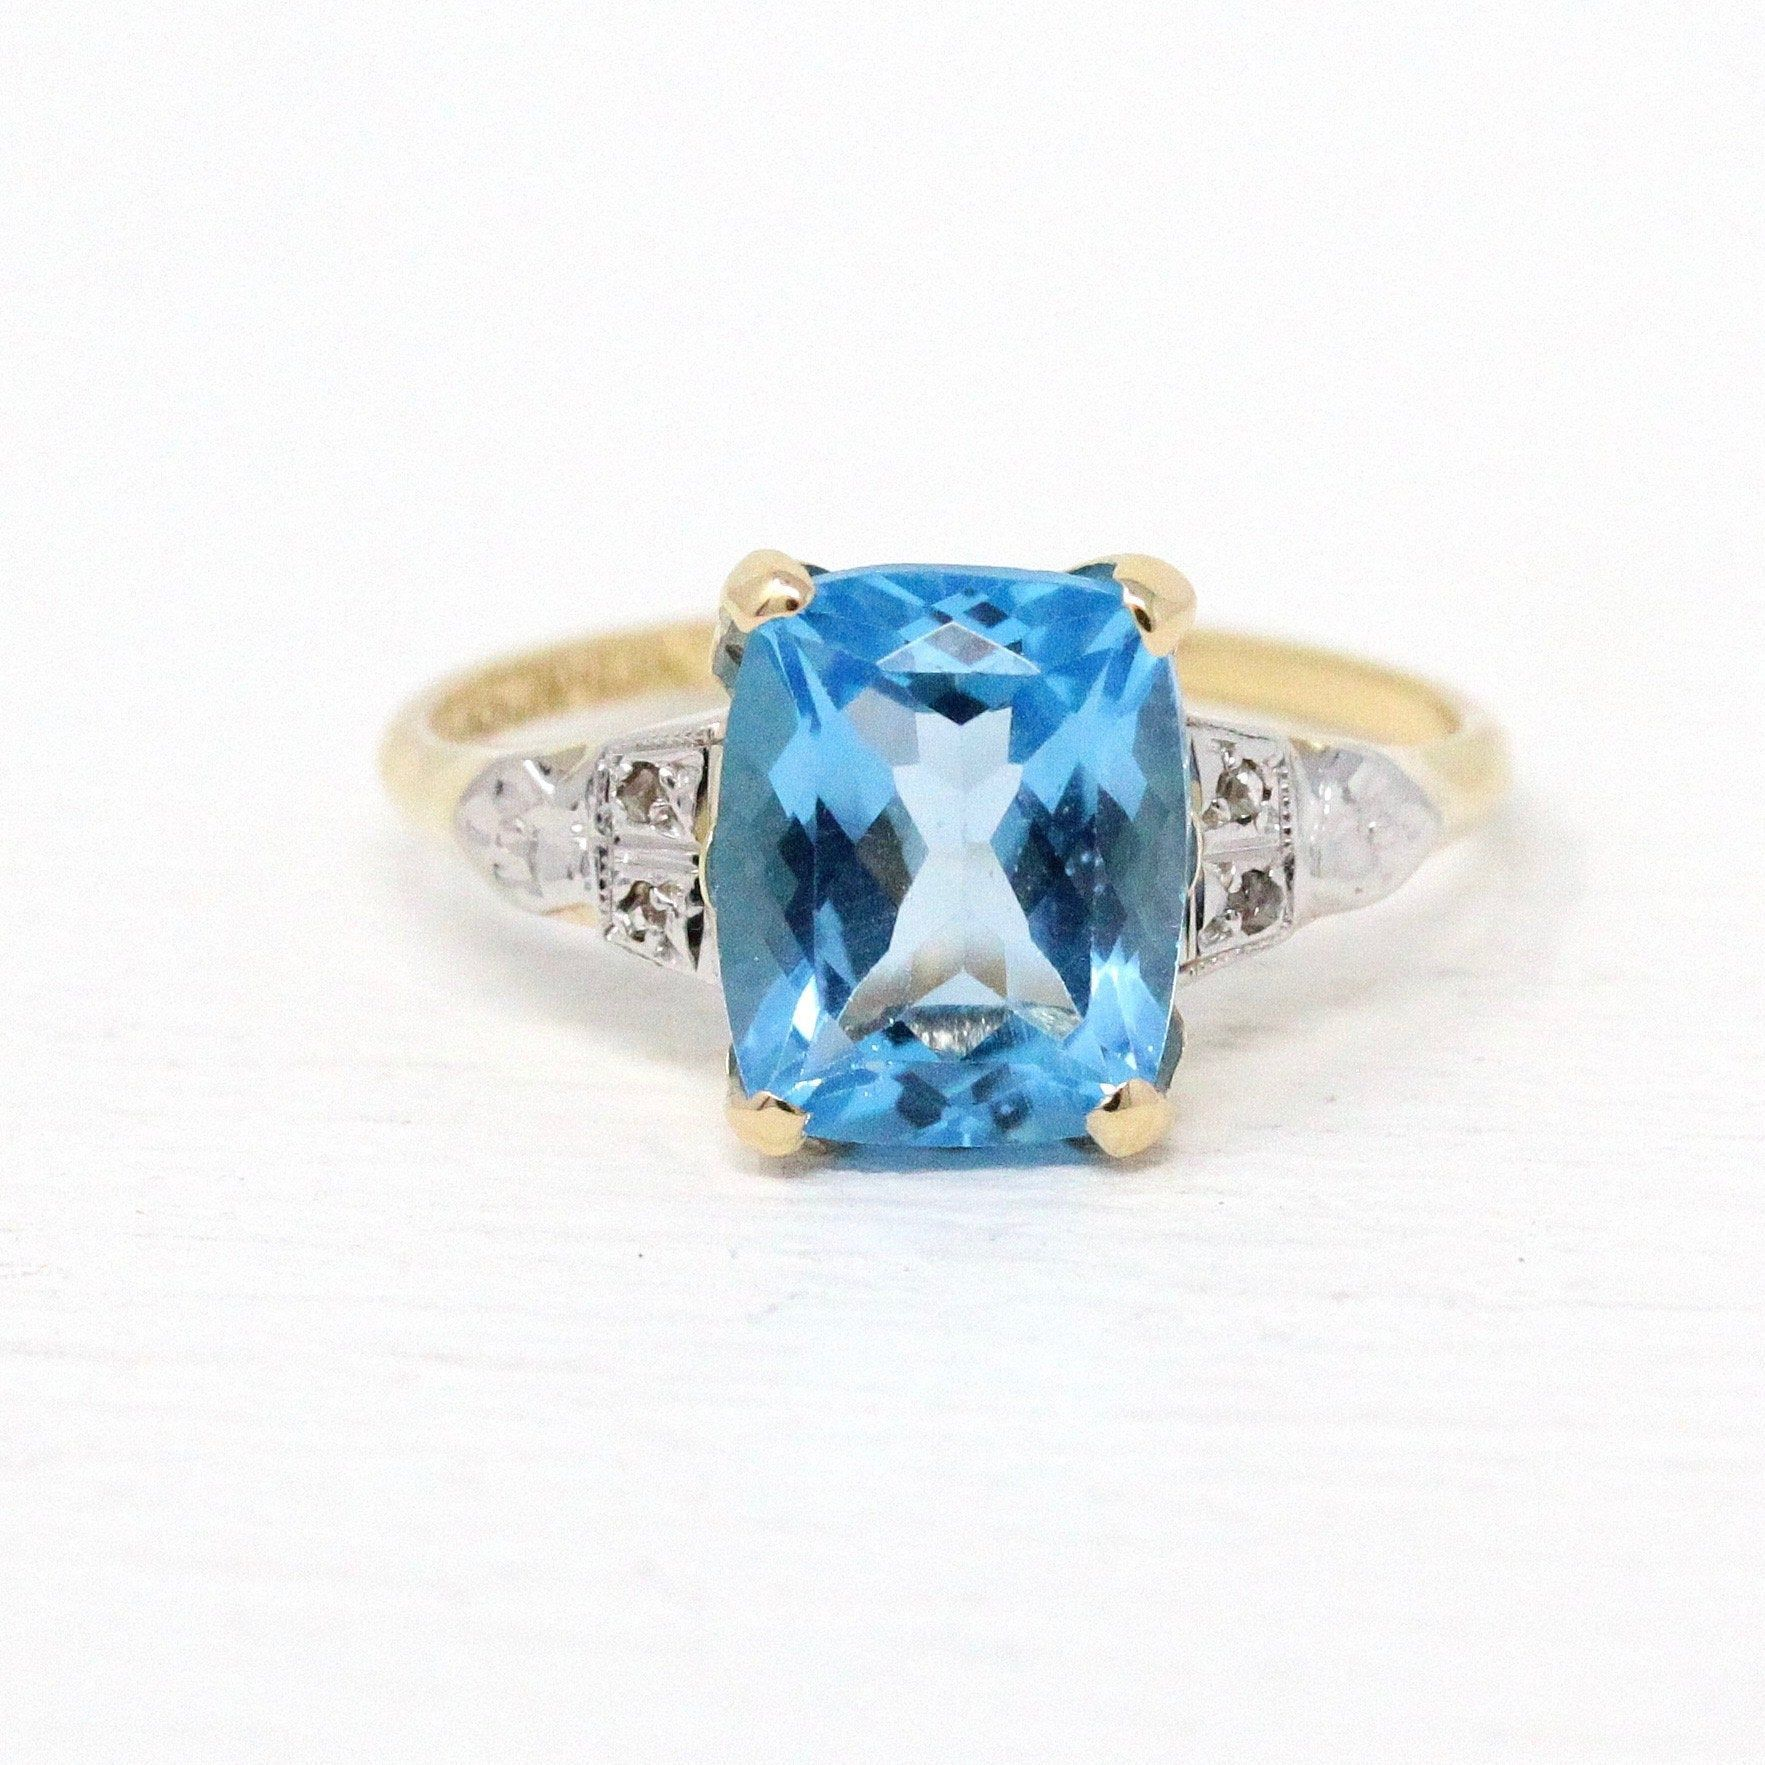 Blue Topaz Ring Vintage 10k Yellow Gold Swiss Blue Gemstone Art Deco 1940s Dason Size 7 4 1 Blue Topaz Ring Beautiful Rings Vintage Antique Rings Vintage